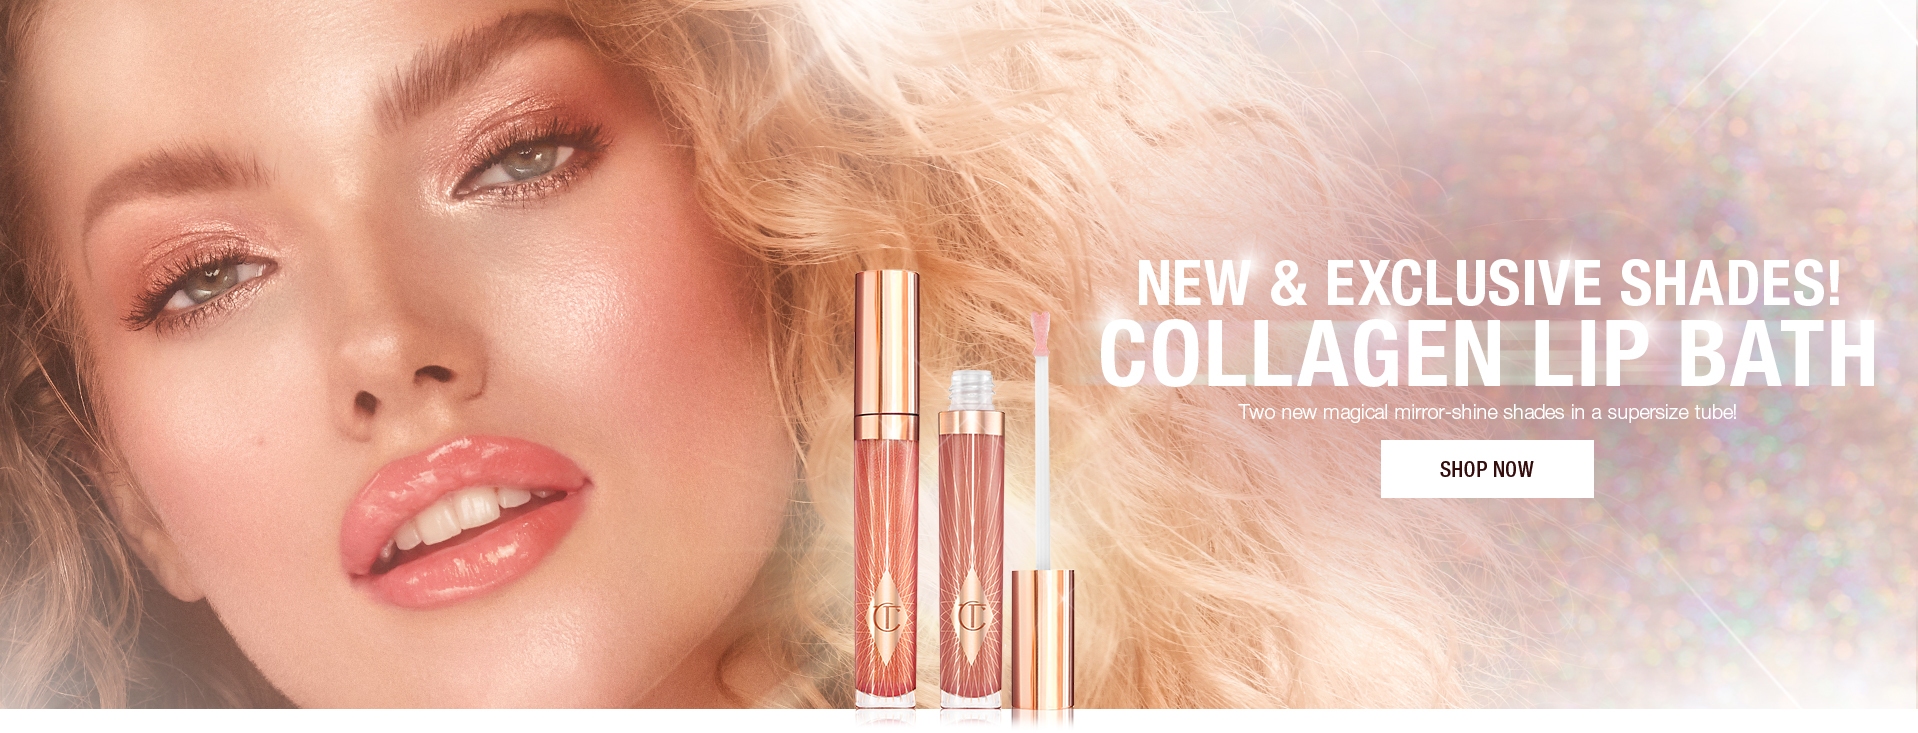 da9c43ae3dbf Official Site: Makeup, Skin Care & Beauty | Charlotte Tilbury